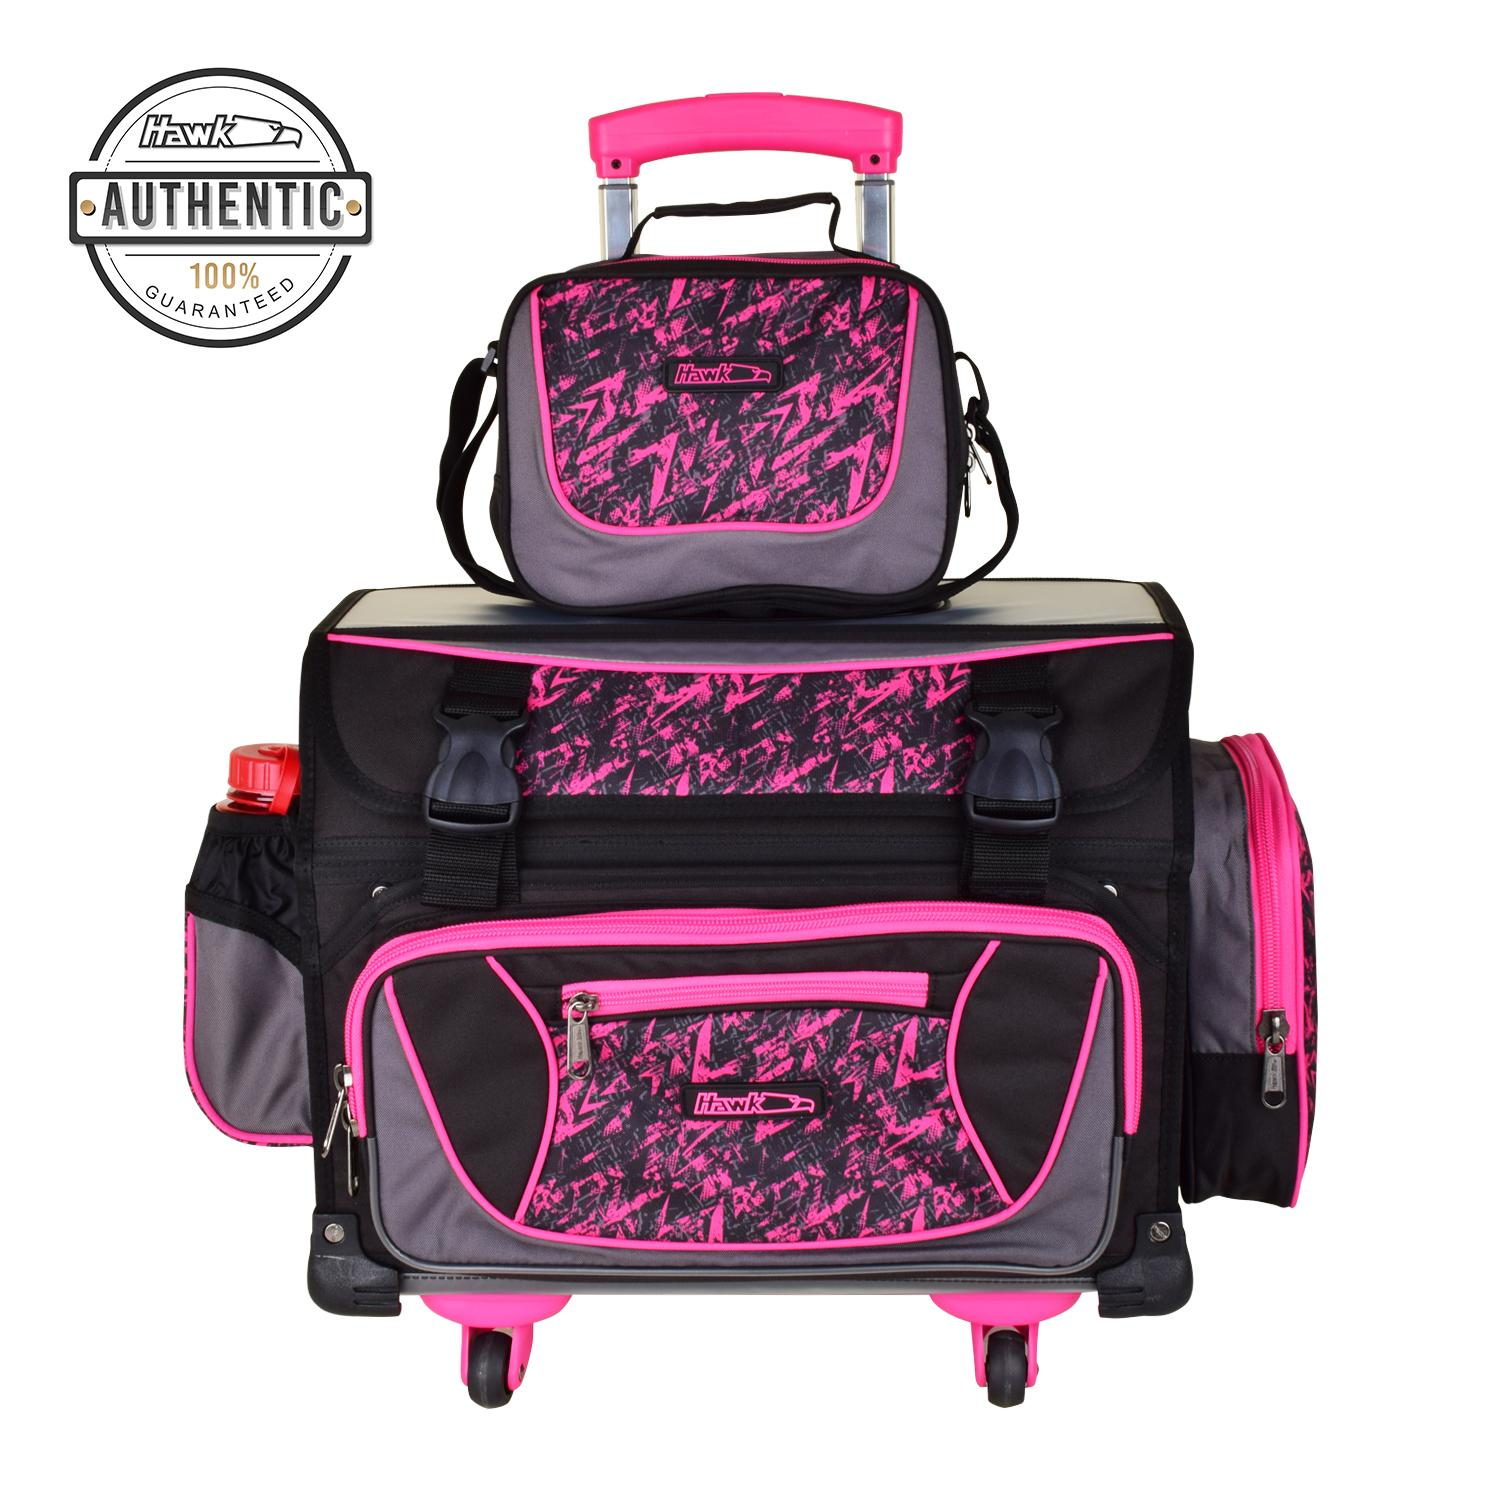 8d4043e0f92 Luggage for sale - Luggage Bag online brands